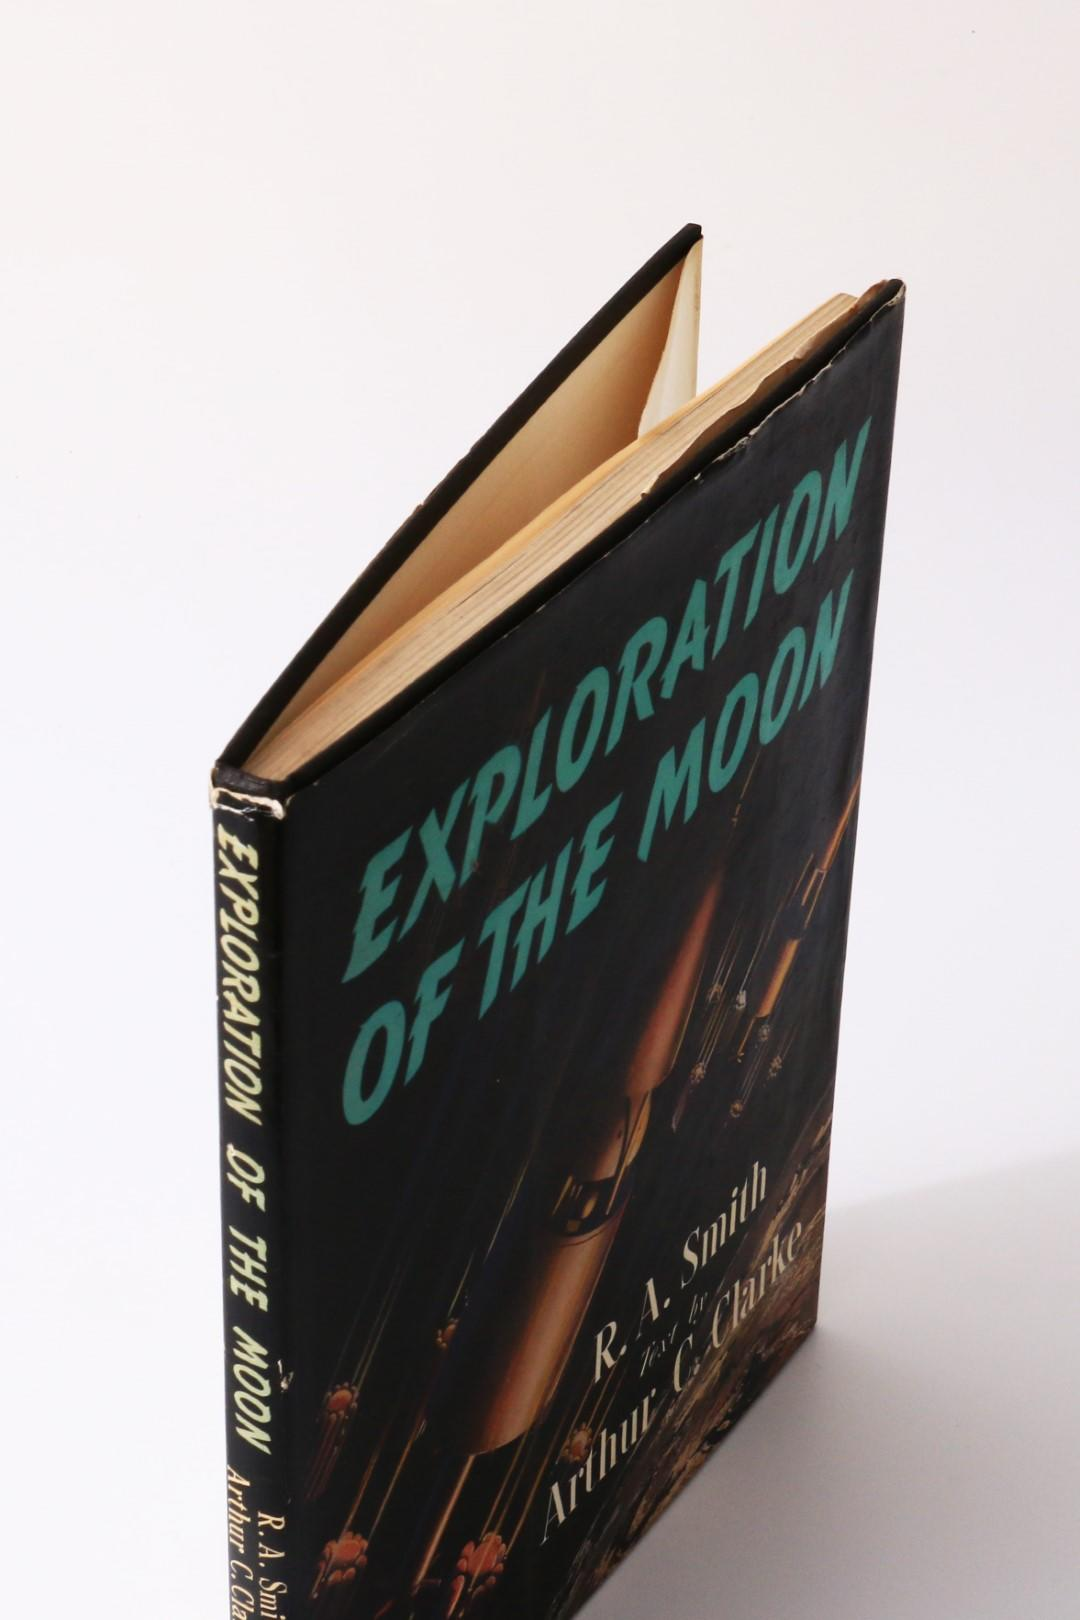 Arthur C. Clarke - Exploration of the Moon - Frederick Muller, 1954, First Edition.